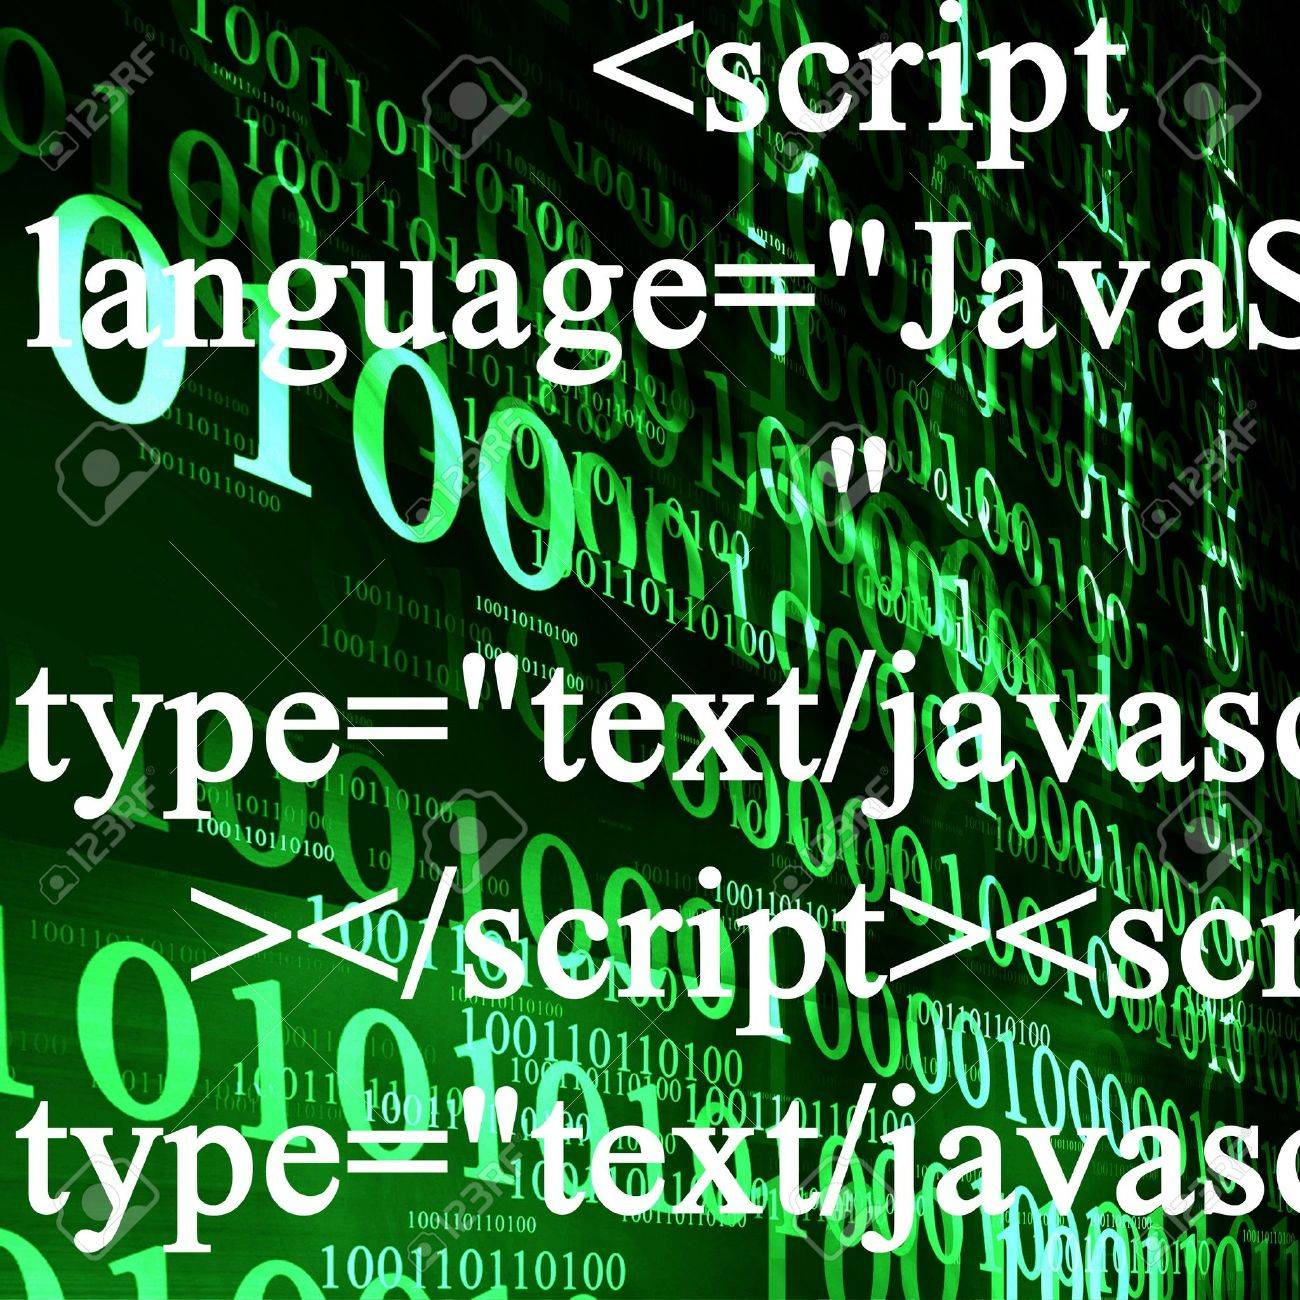 Background image javascript - Bits And Bytes On A Dark Green Background Stock Photo 4149037